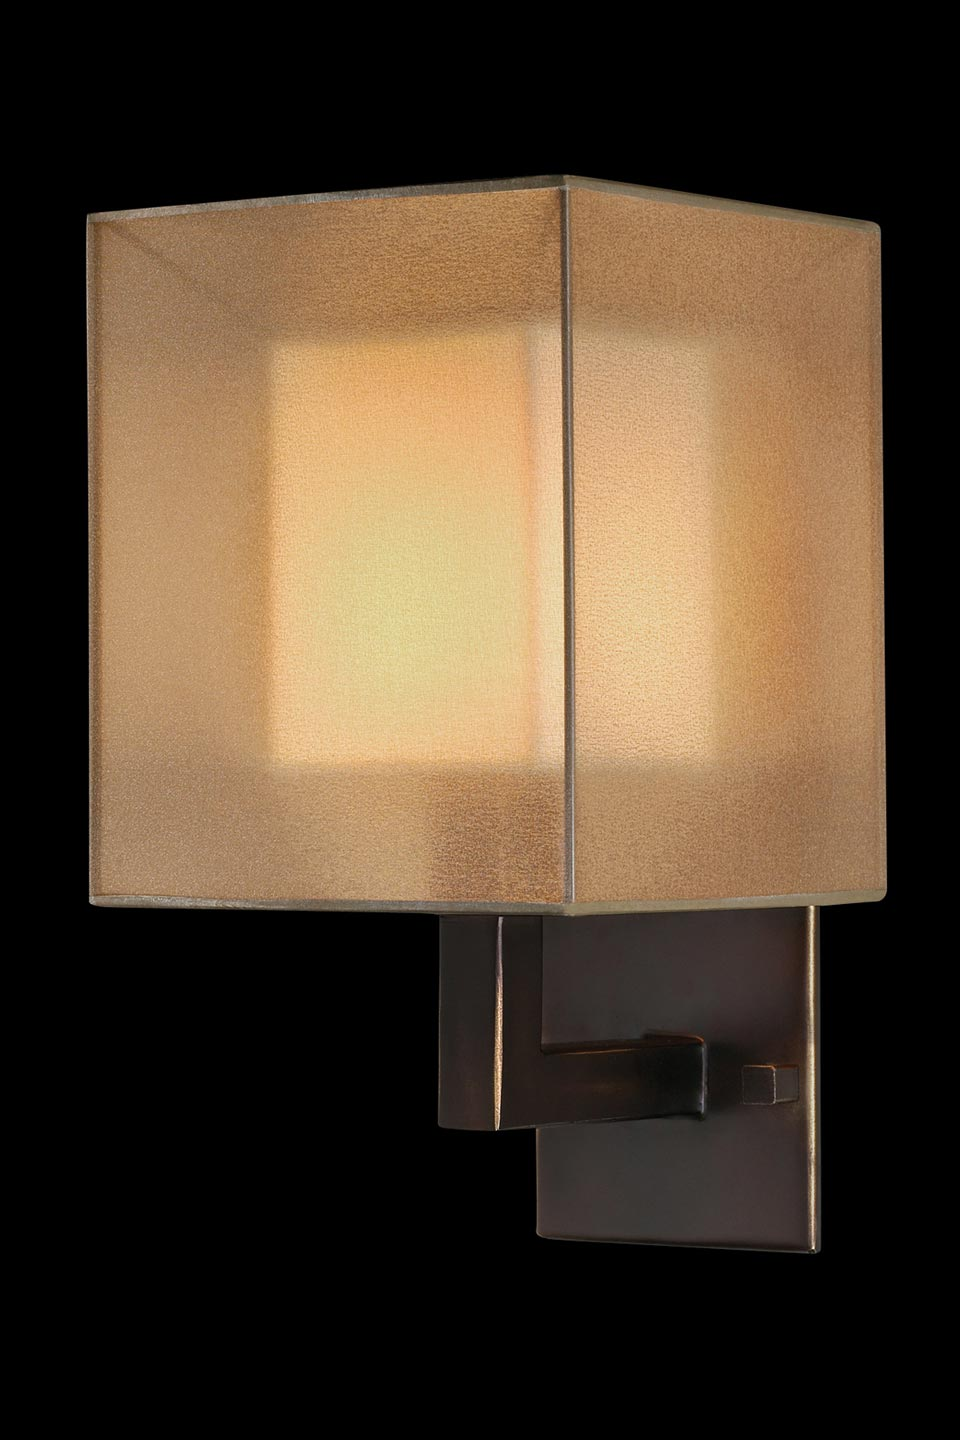 Quadralli applique abat-jour cubique bronze naturel. Fine Art Lamps.